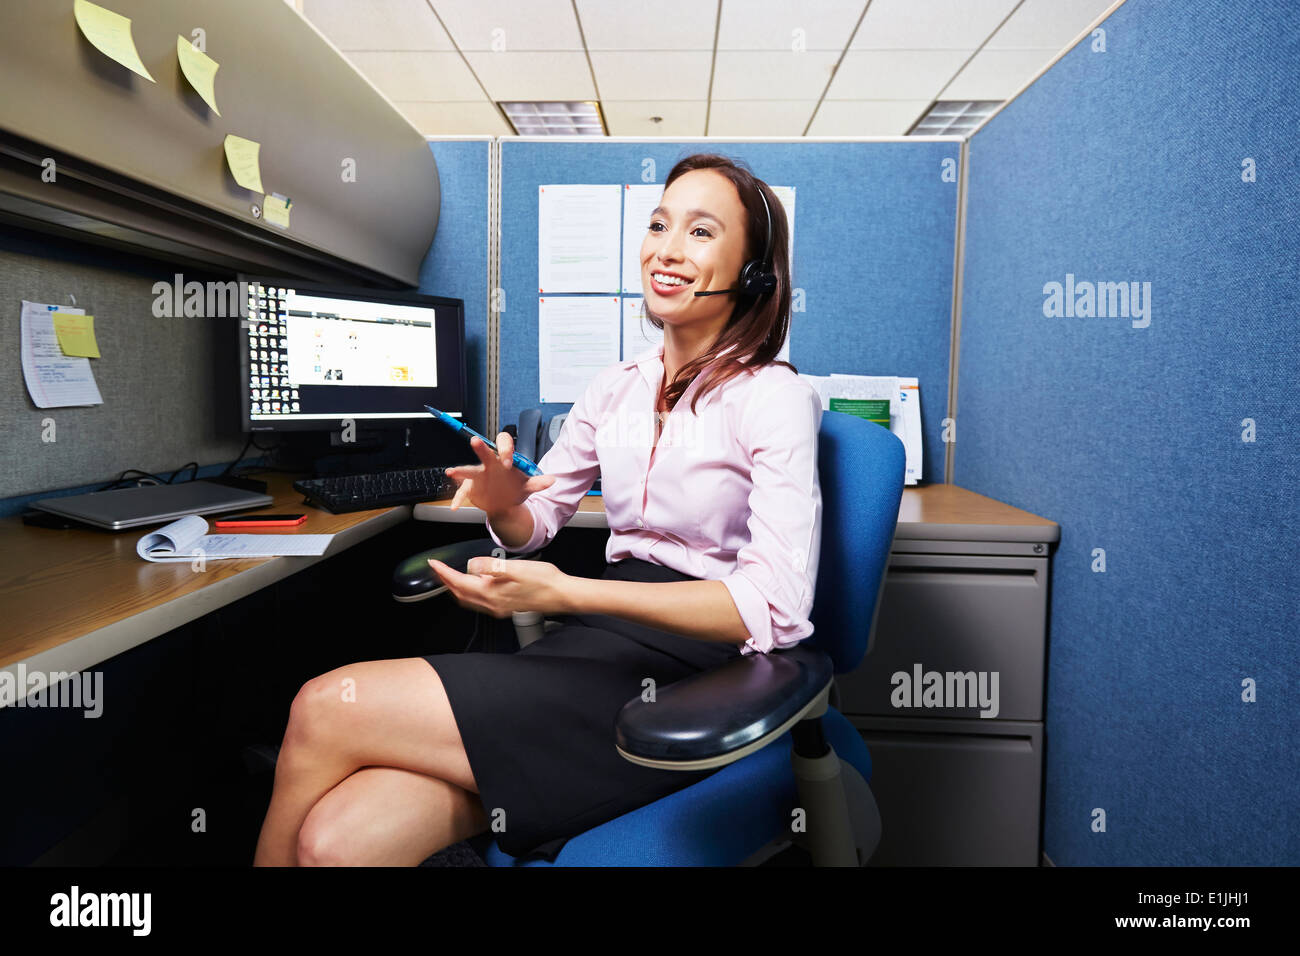 Young female office worker using bluetooth headset in office - Stock Image